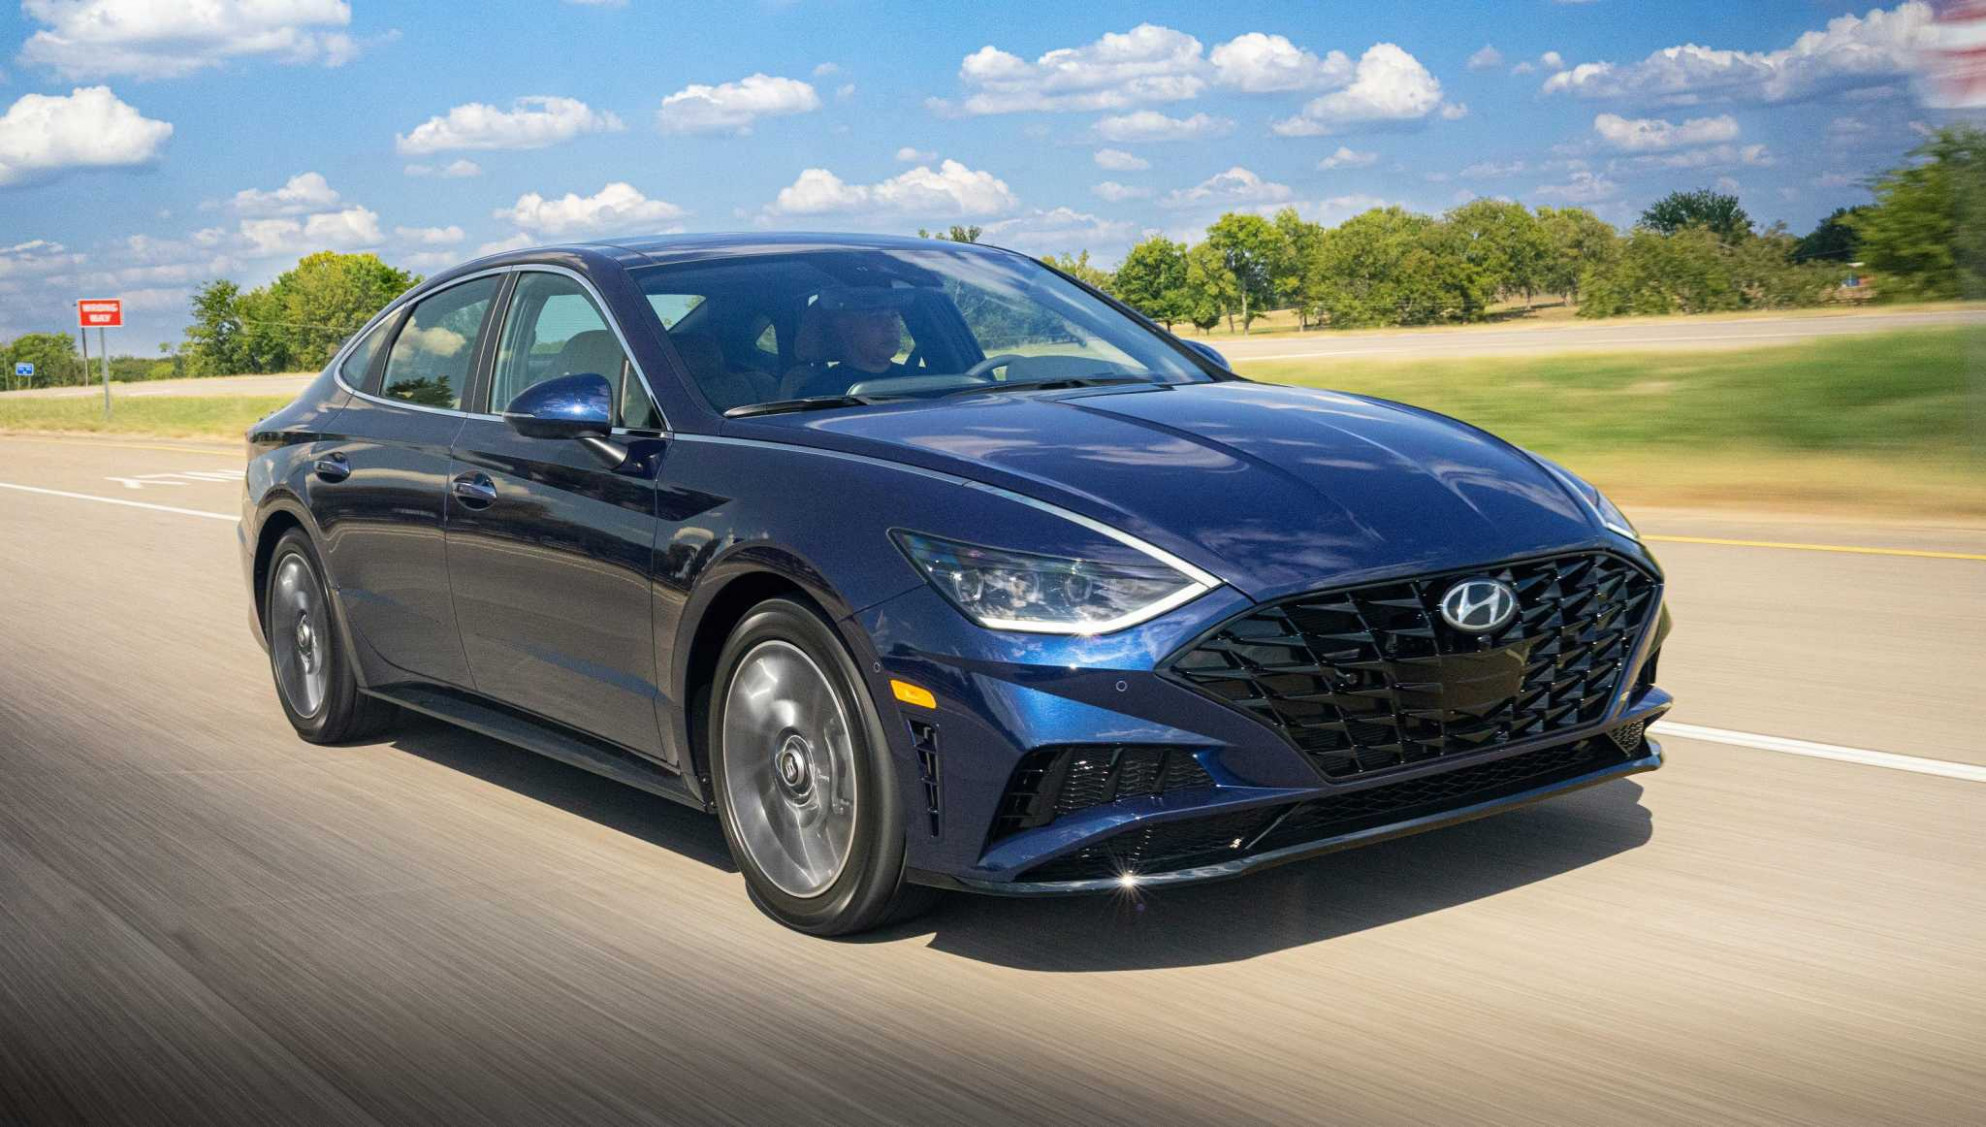 6 Hyundai Sonata upgraded with a more striking design, new body ..